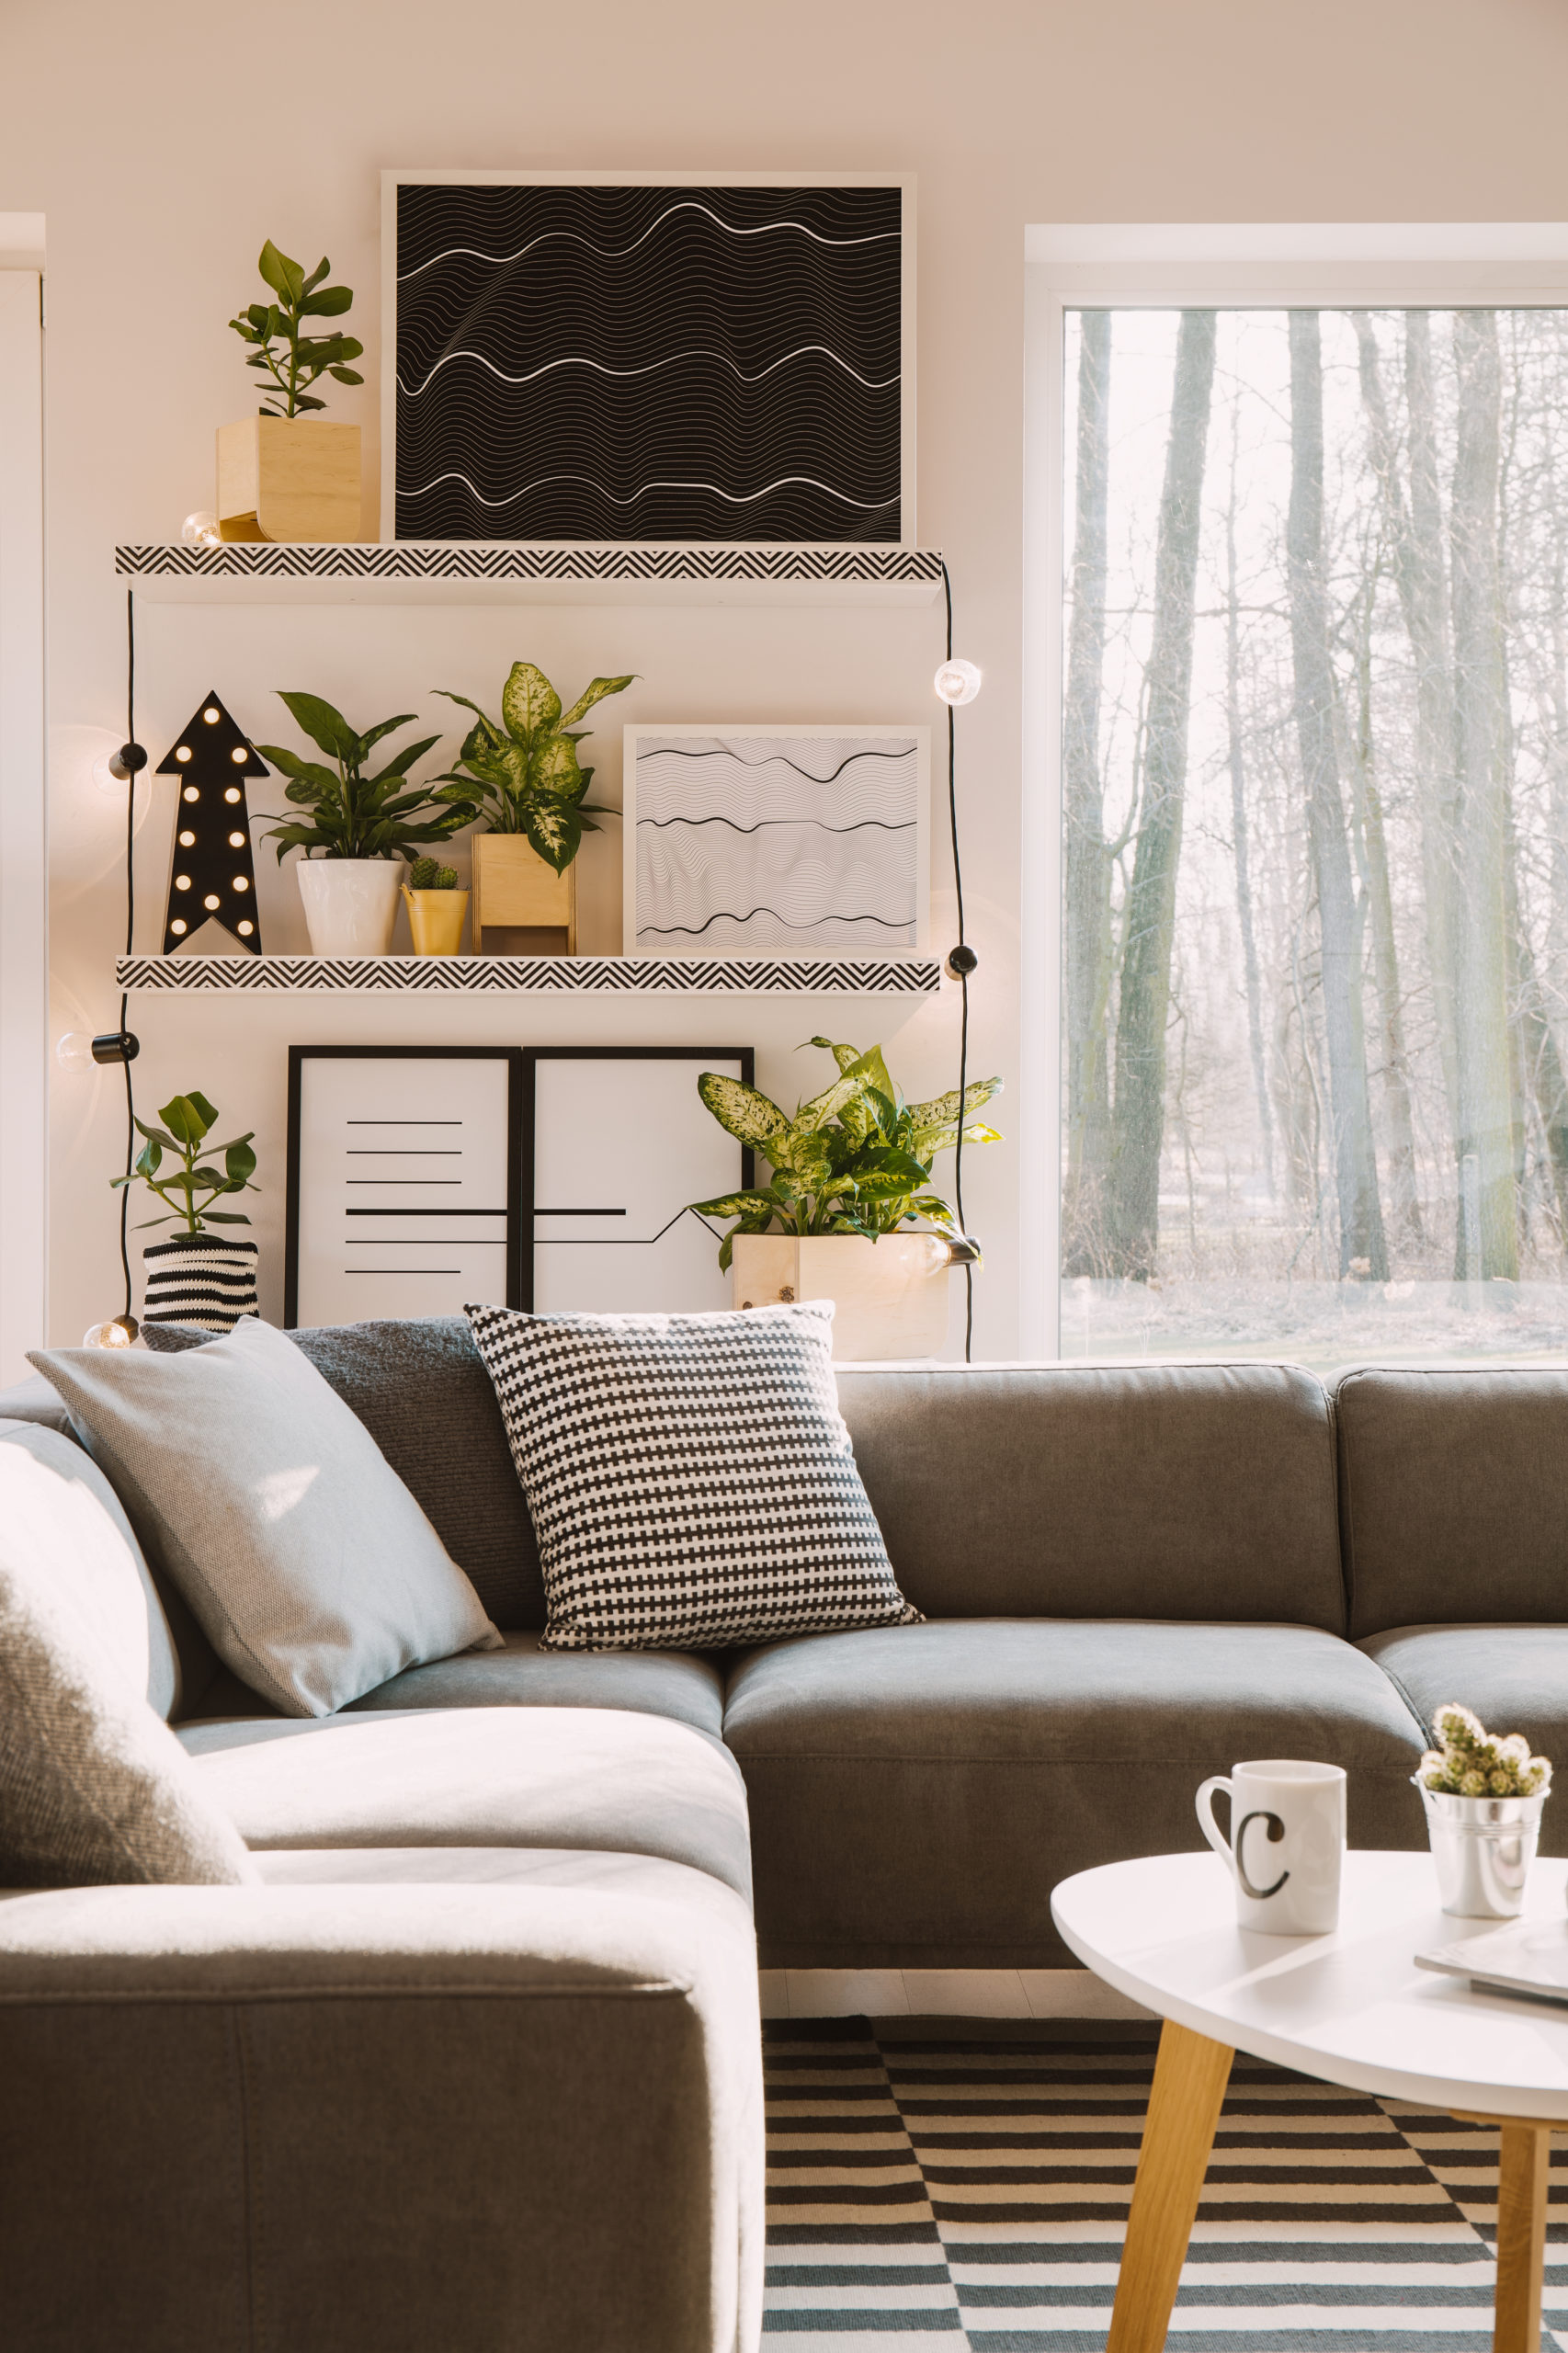 Pillows with pattern on grey corner couch standing in bright Nordic living room interior with posters, green plants, lamps and window